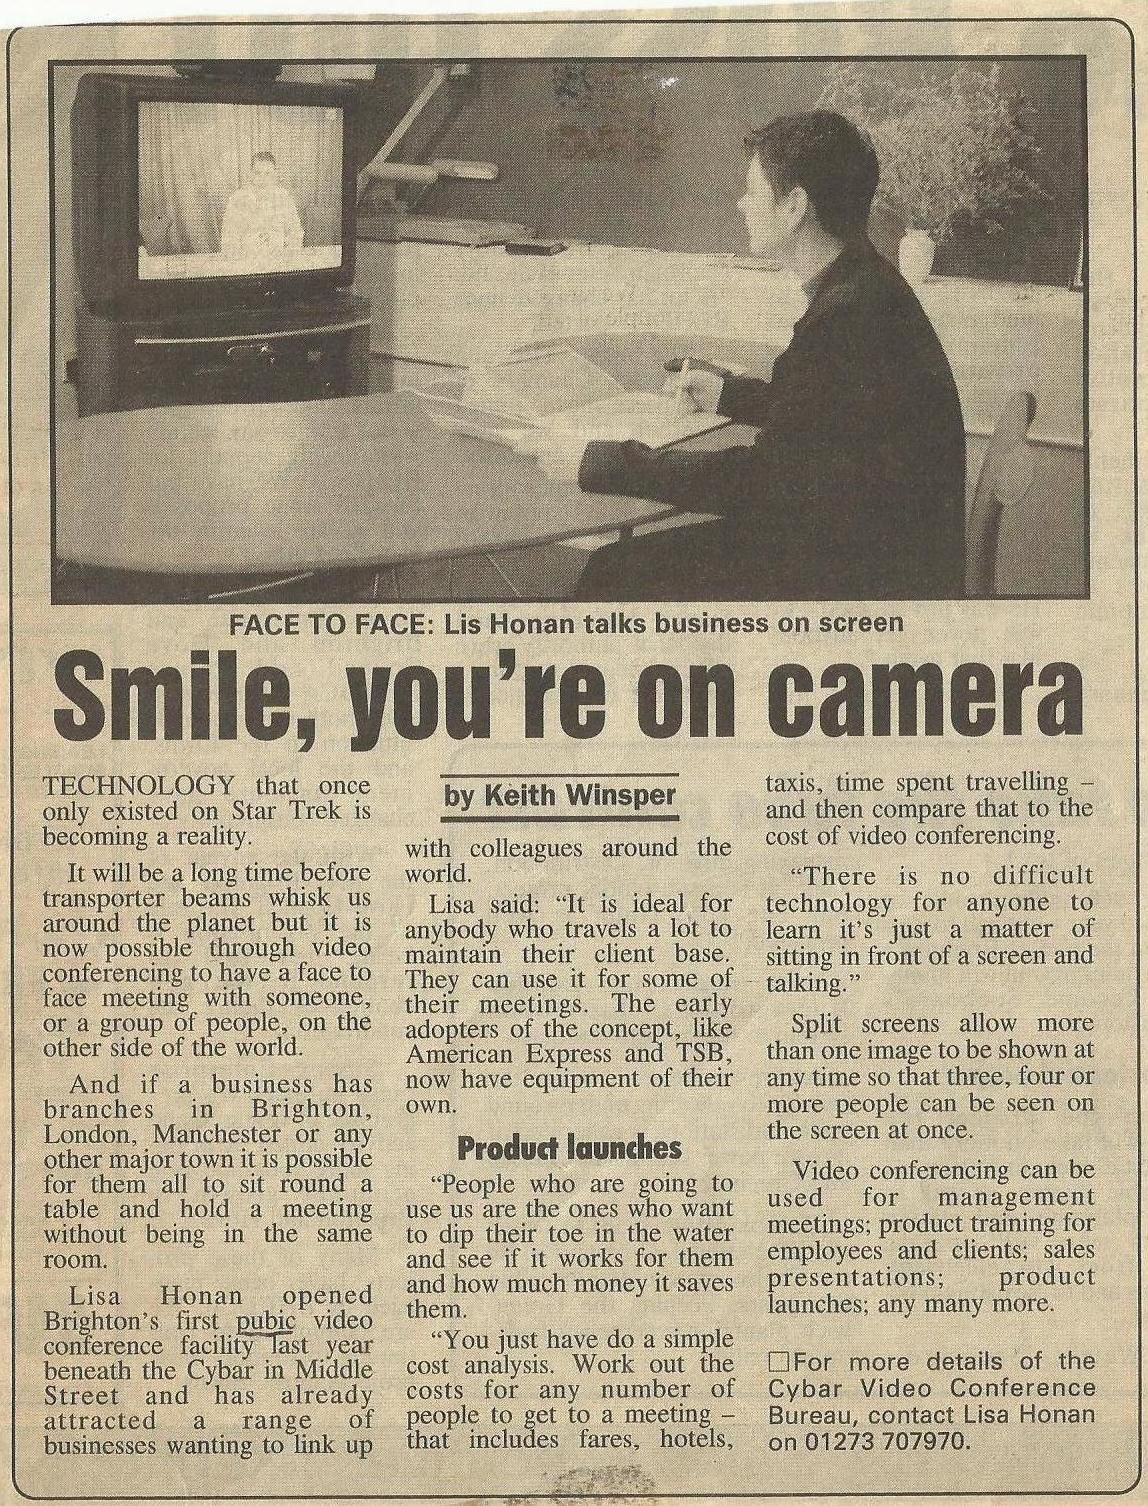 Smile You Re On Camera An Old Newspaper Article About Eyenetwork And Video Conferencing Old Newspaper Vintage Newspaper Newspaper Article